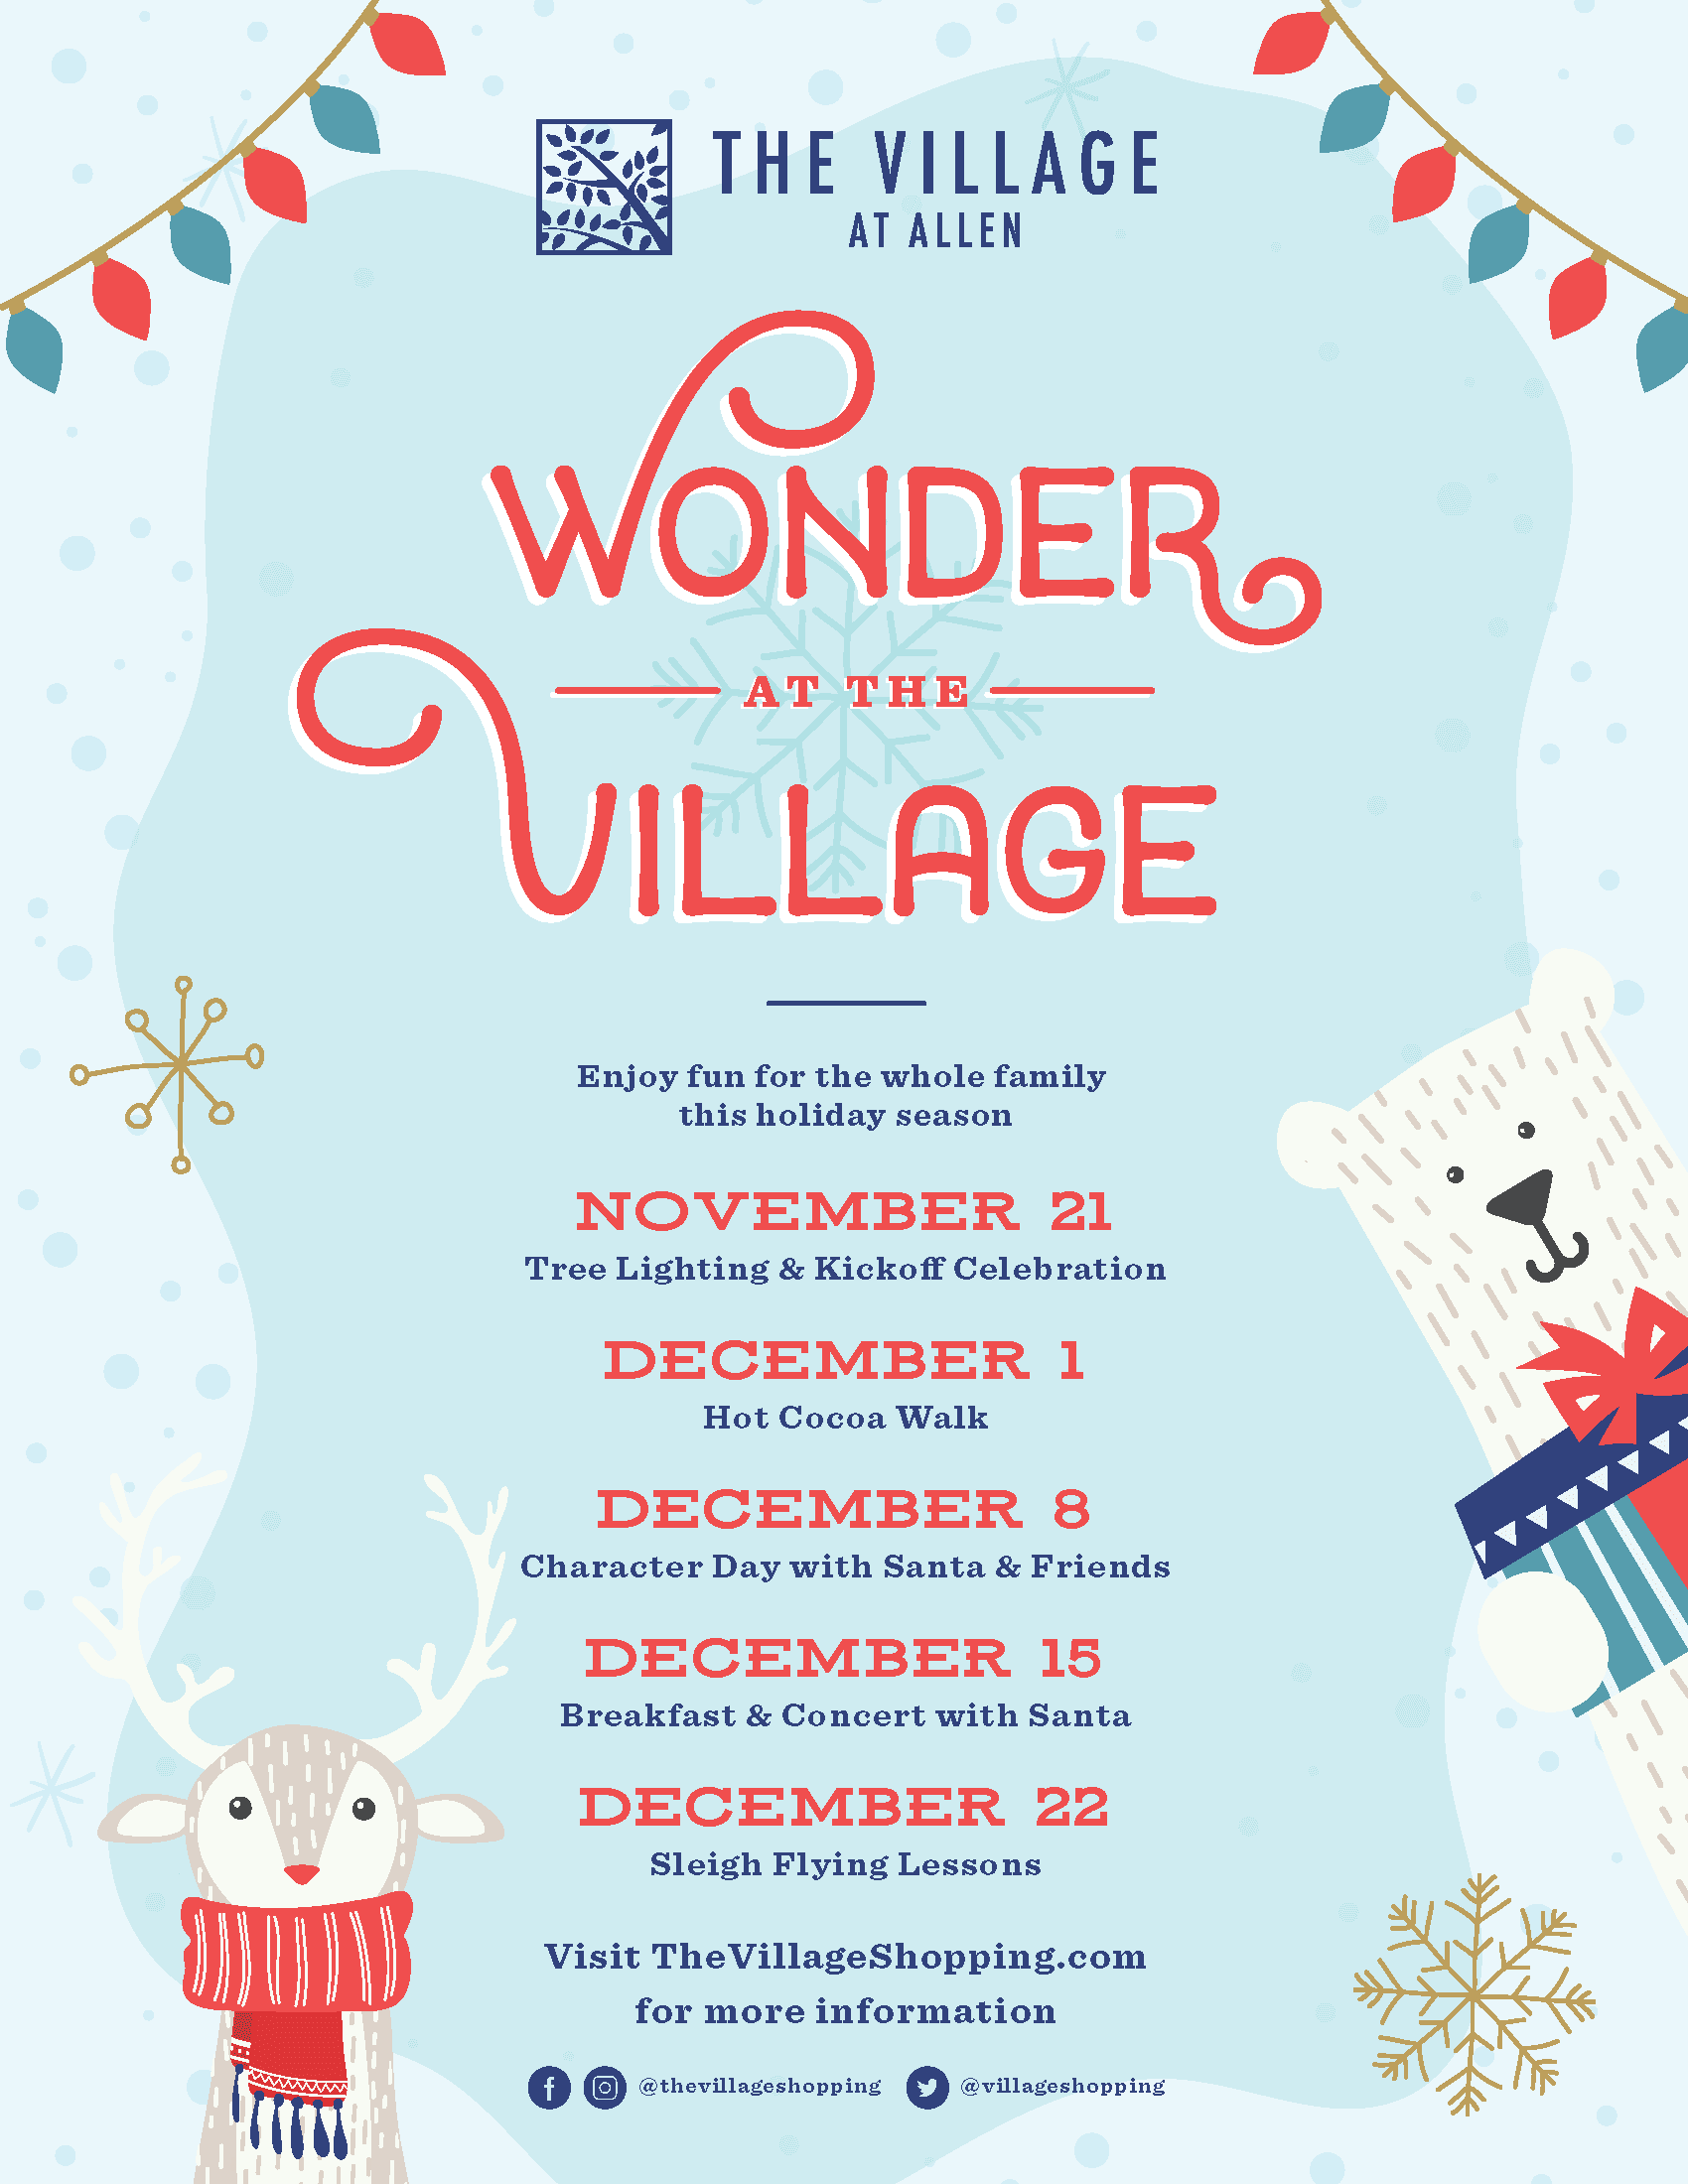 Wonder at the Village list of events